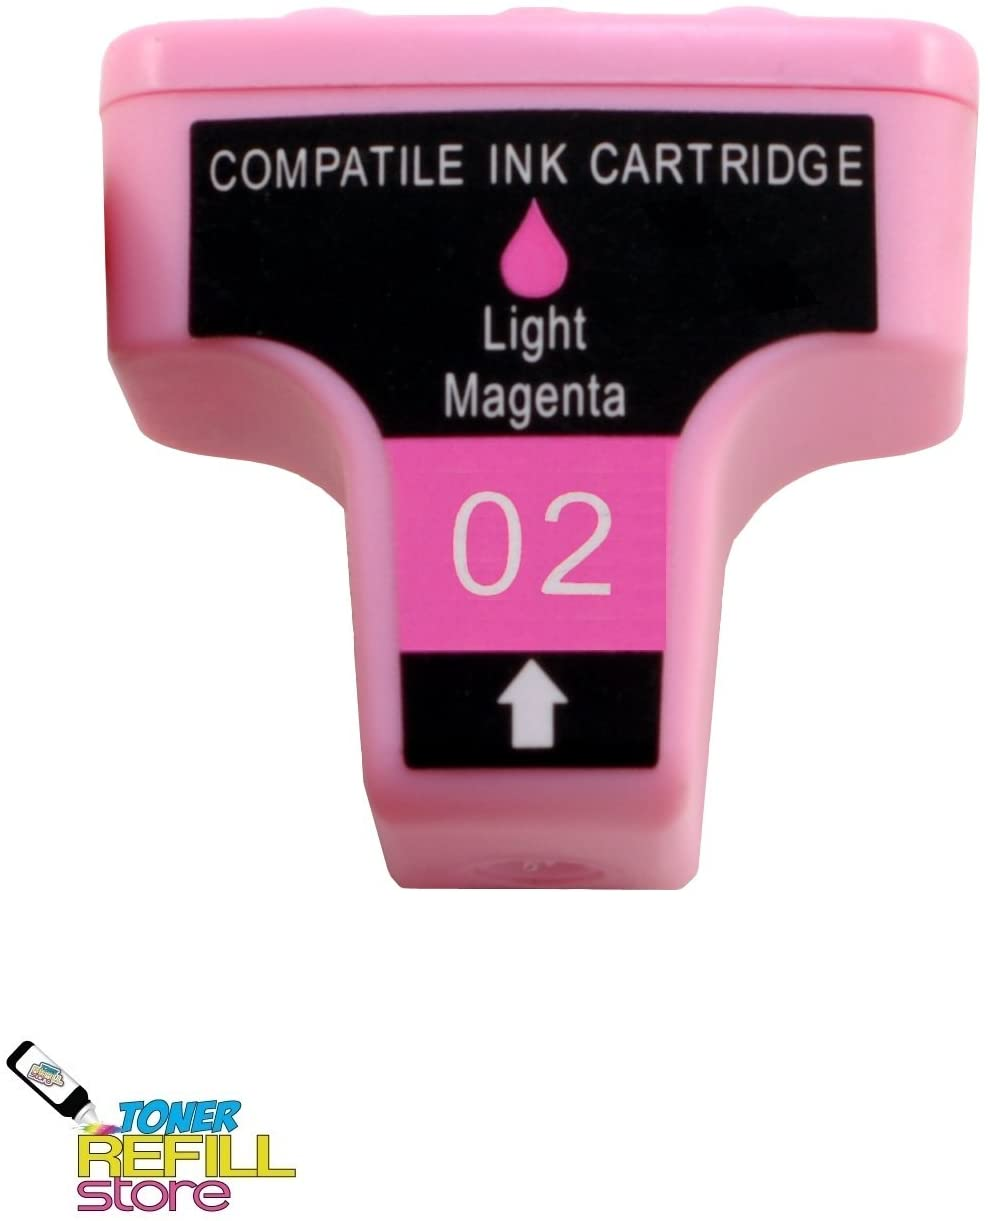 Toner Refill Store Compatible HP 02 Ink Cartridge Replacement for the HP C8775WN (Light Magenta, 1-Pack)